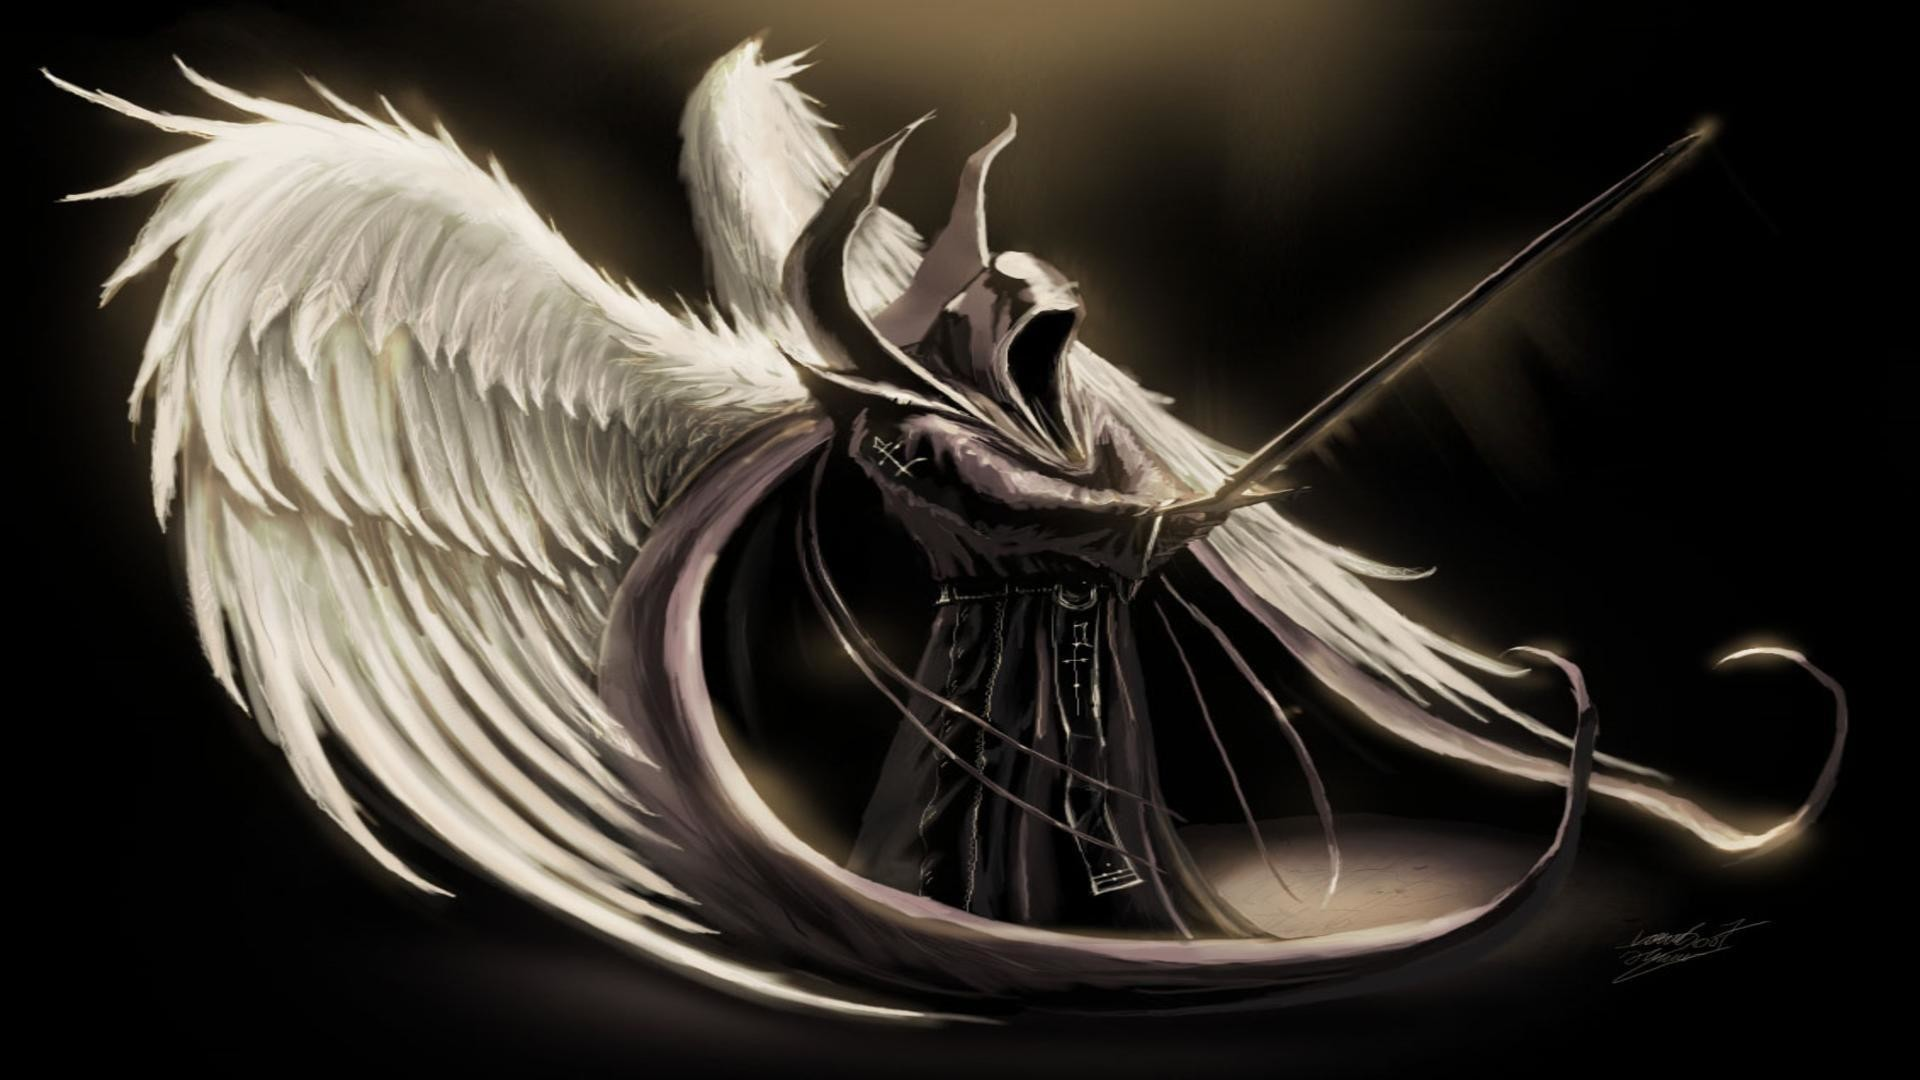 1920x1080 Dark angel wings free desktop background - free wallpaper image